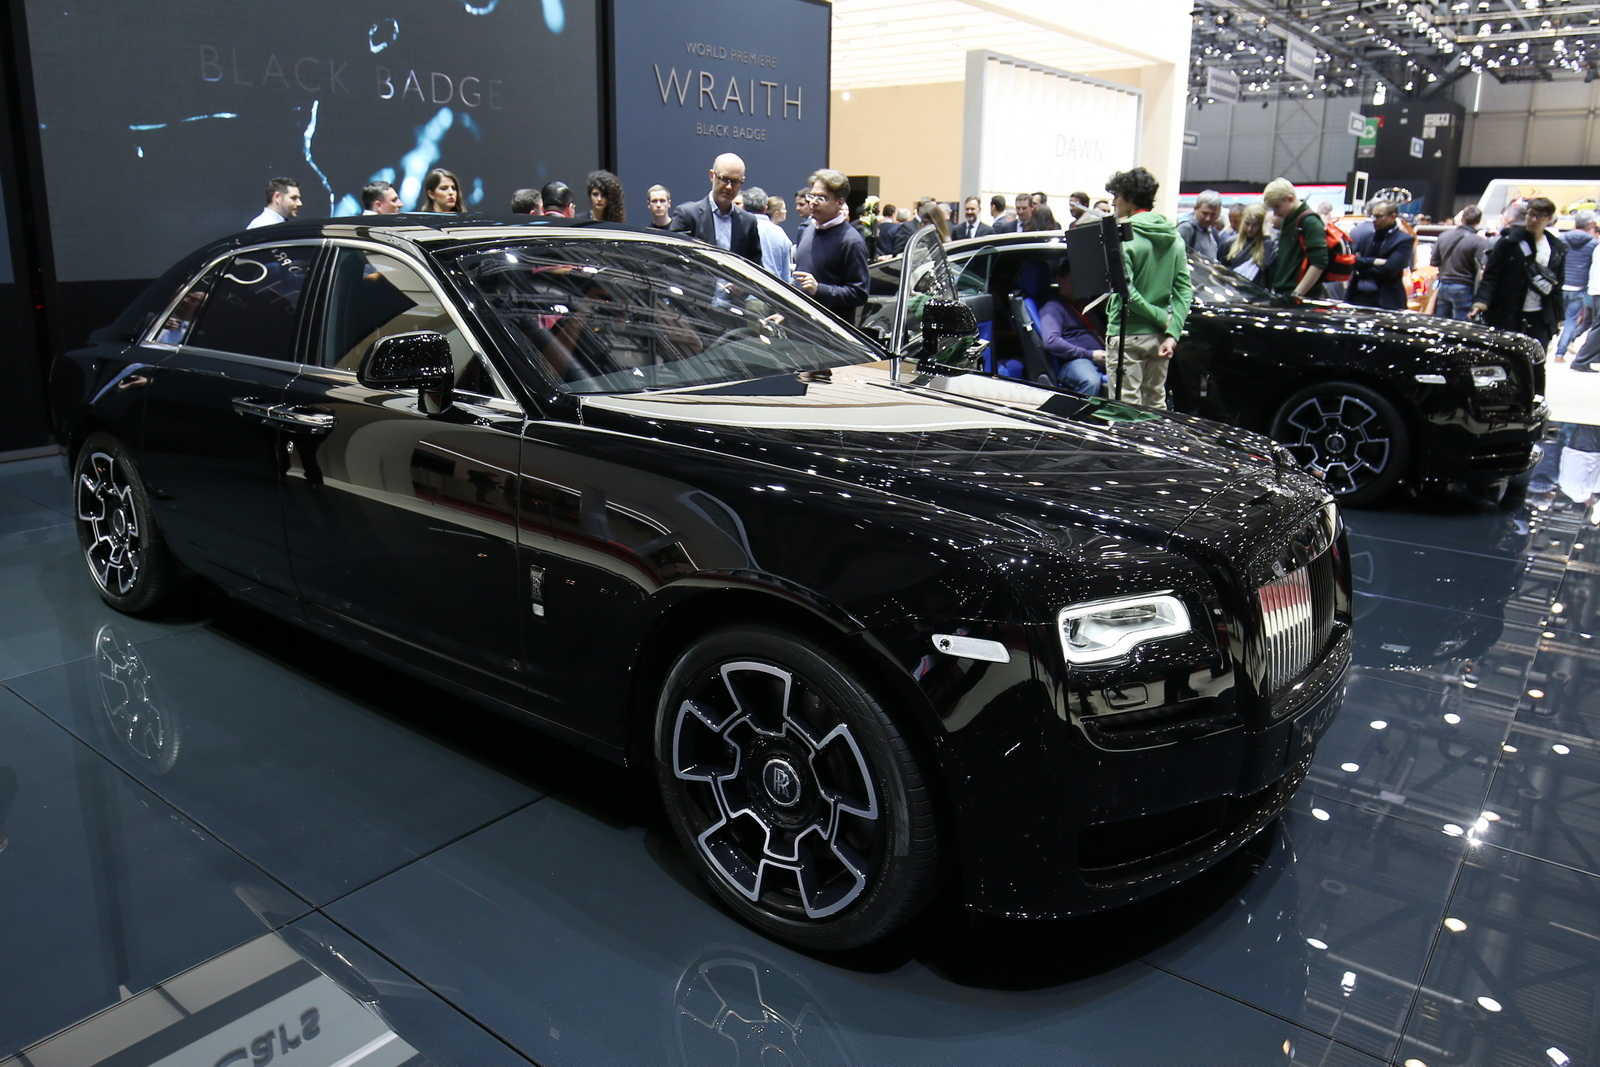 rolls royce wants to attract younger crowd with black badge models carscoops. Black Bedroom Furniture Sets. Home Design Ideas